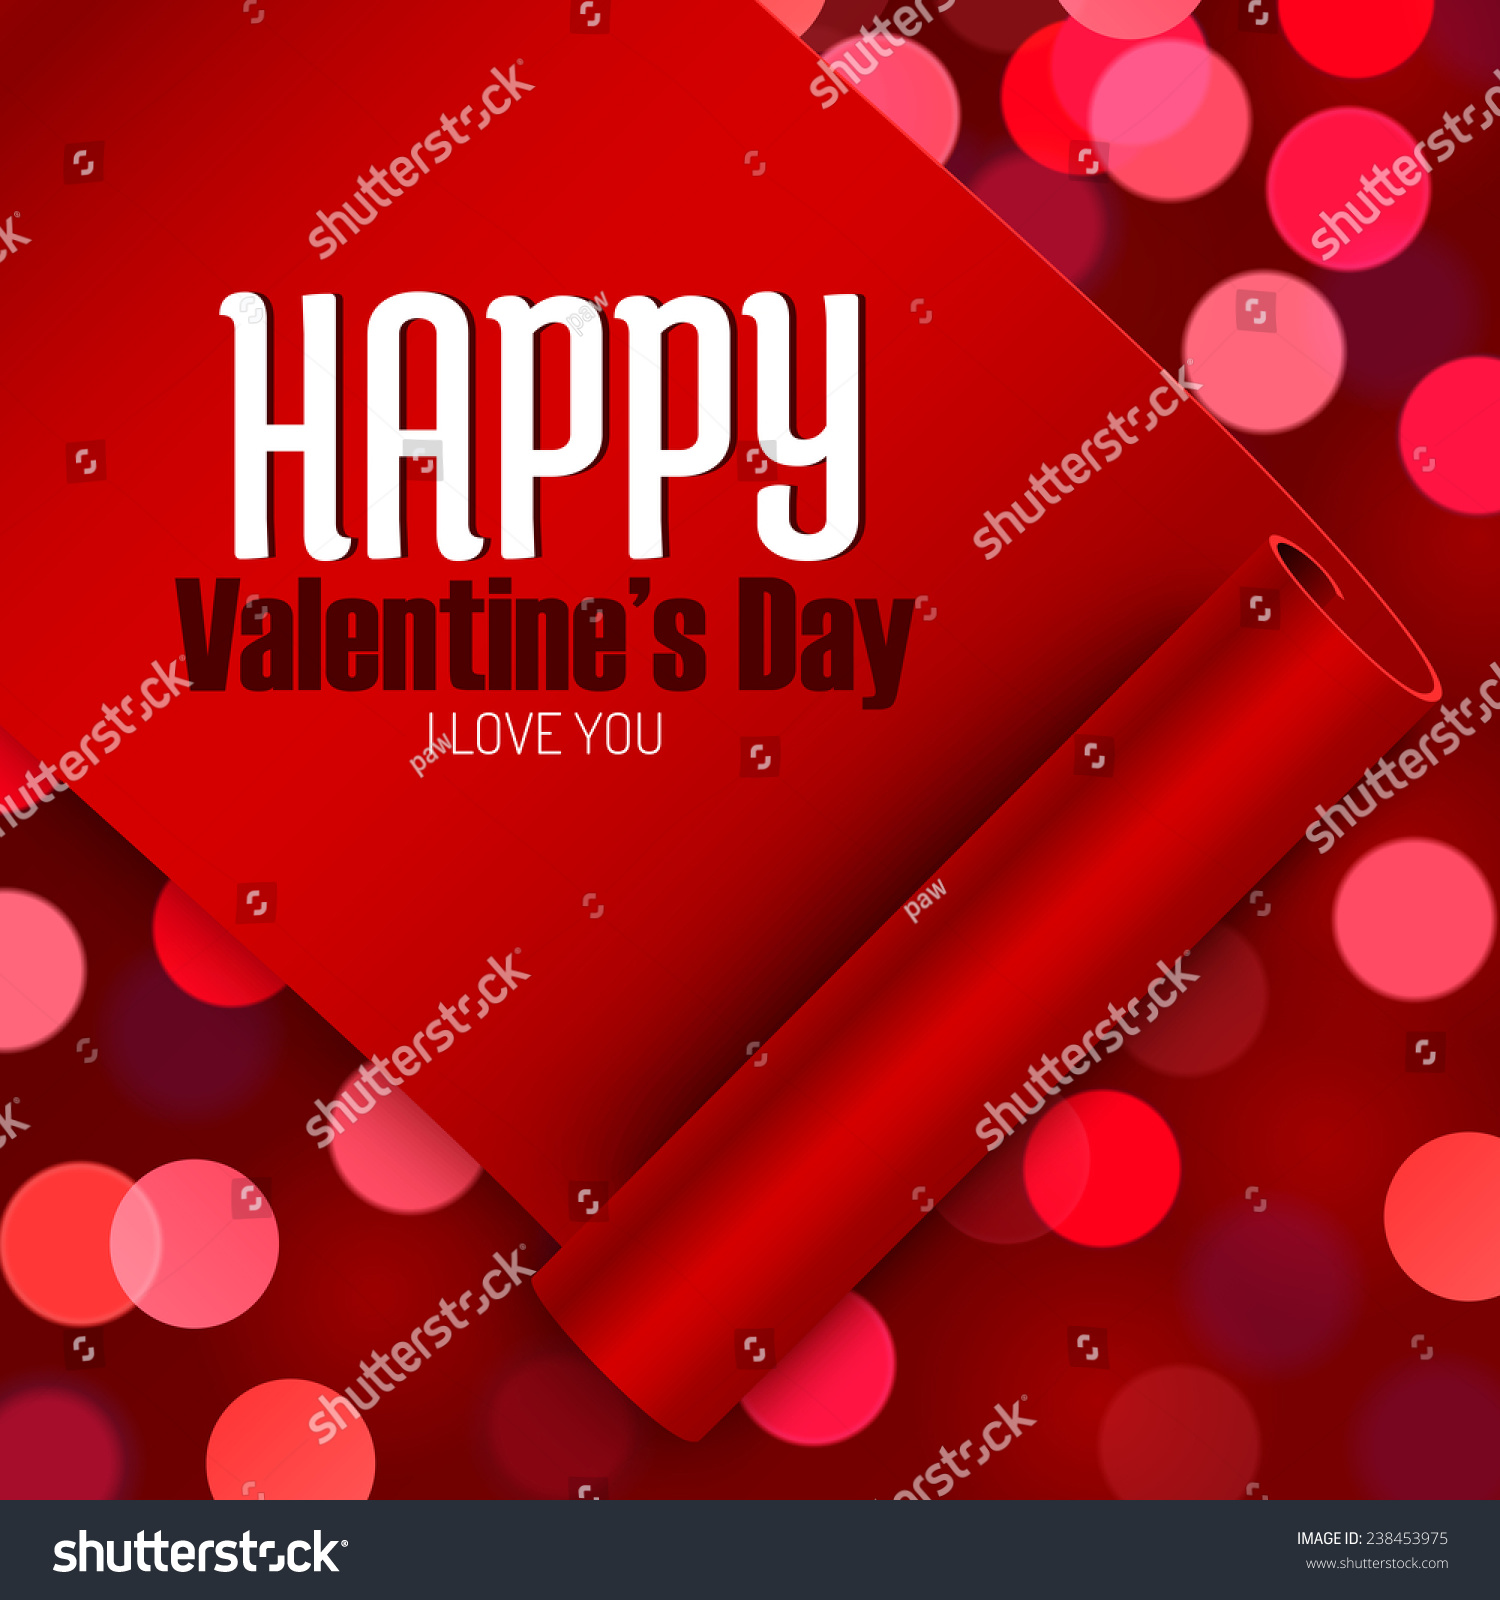 Valentines Day Greeting Card Love Message Stock Vector 238453975